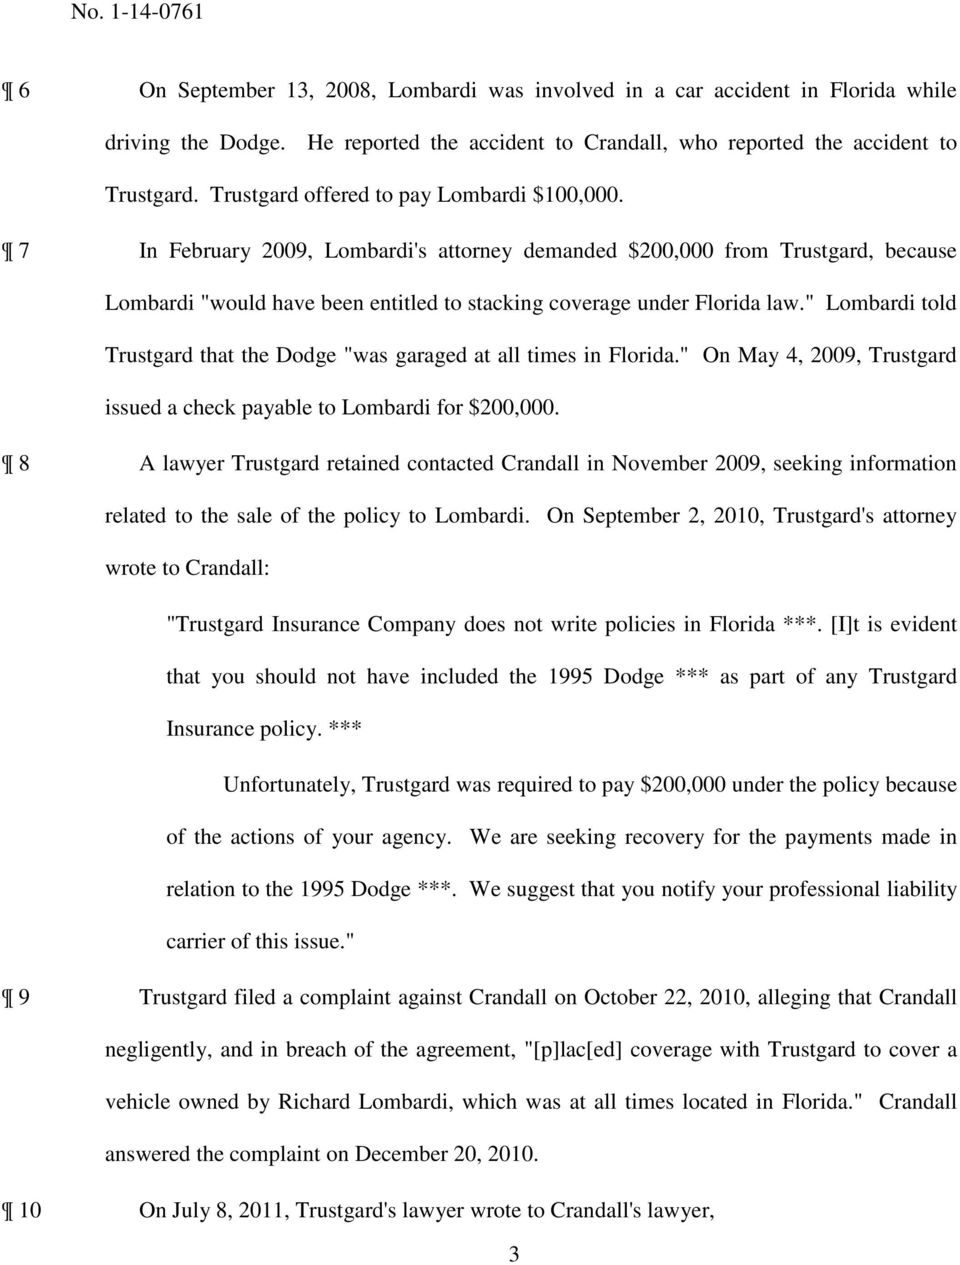 """ Lombardi told Trustgard that the Dodge ""was garaged at all times in Florida."" On May 4, 2009, Trustgard issued a check payable to Lombardi for $200,000."